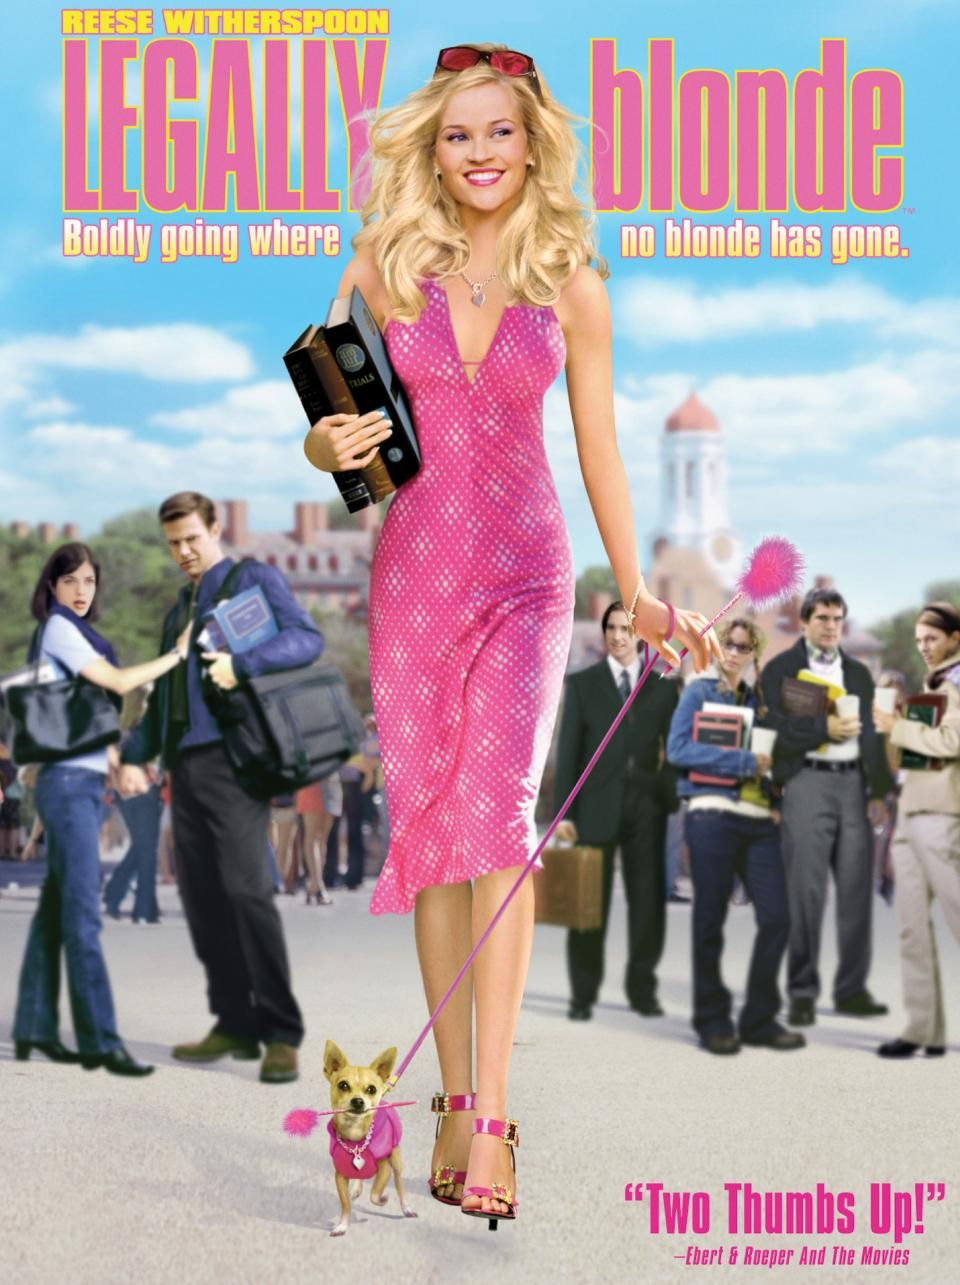 legally blonde | Classical Movies